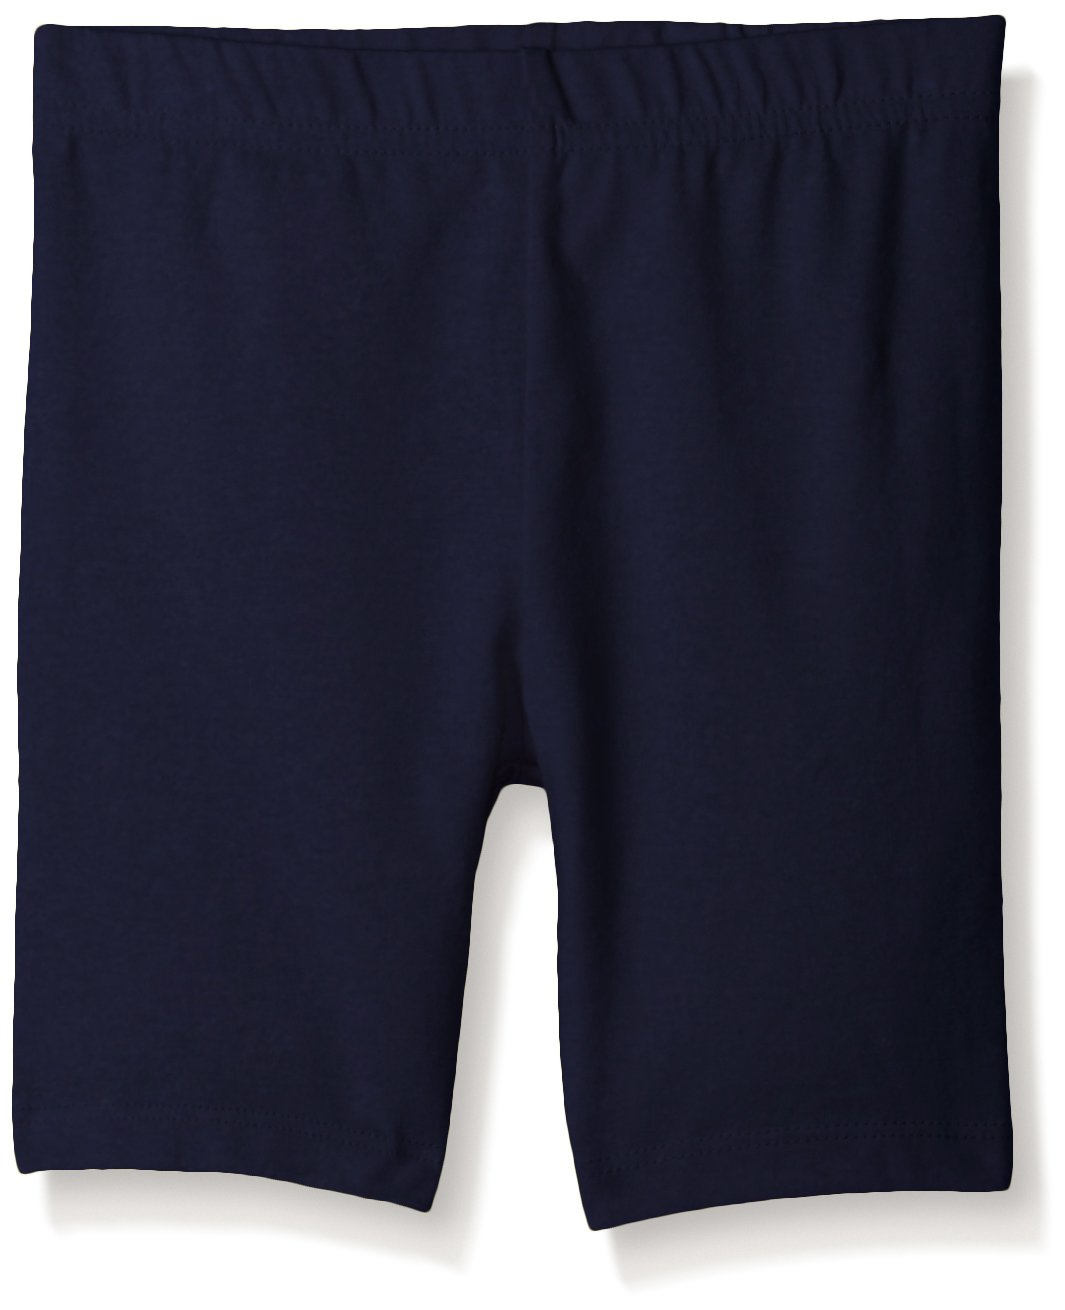 Gerber Graduates Girls Bike Short, Navy, 24 Months